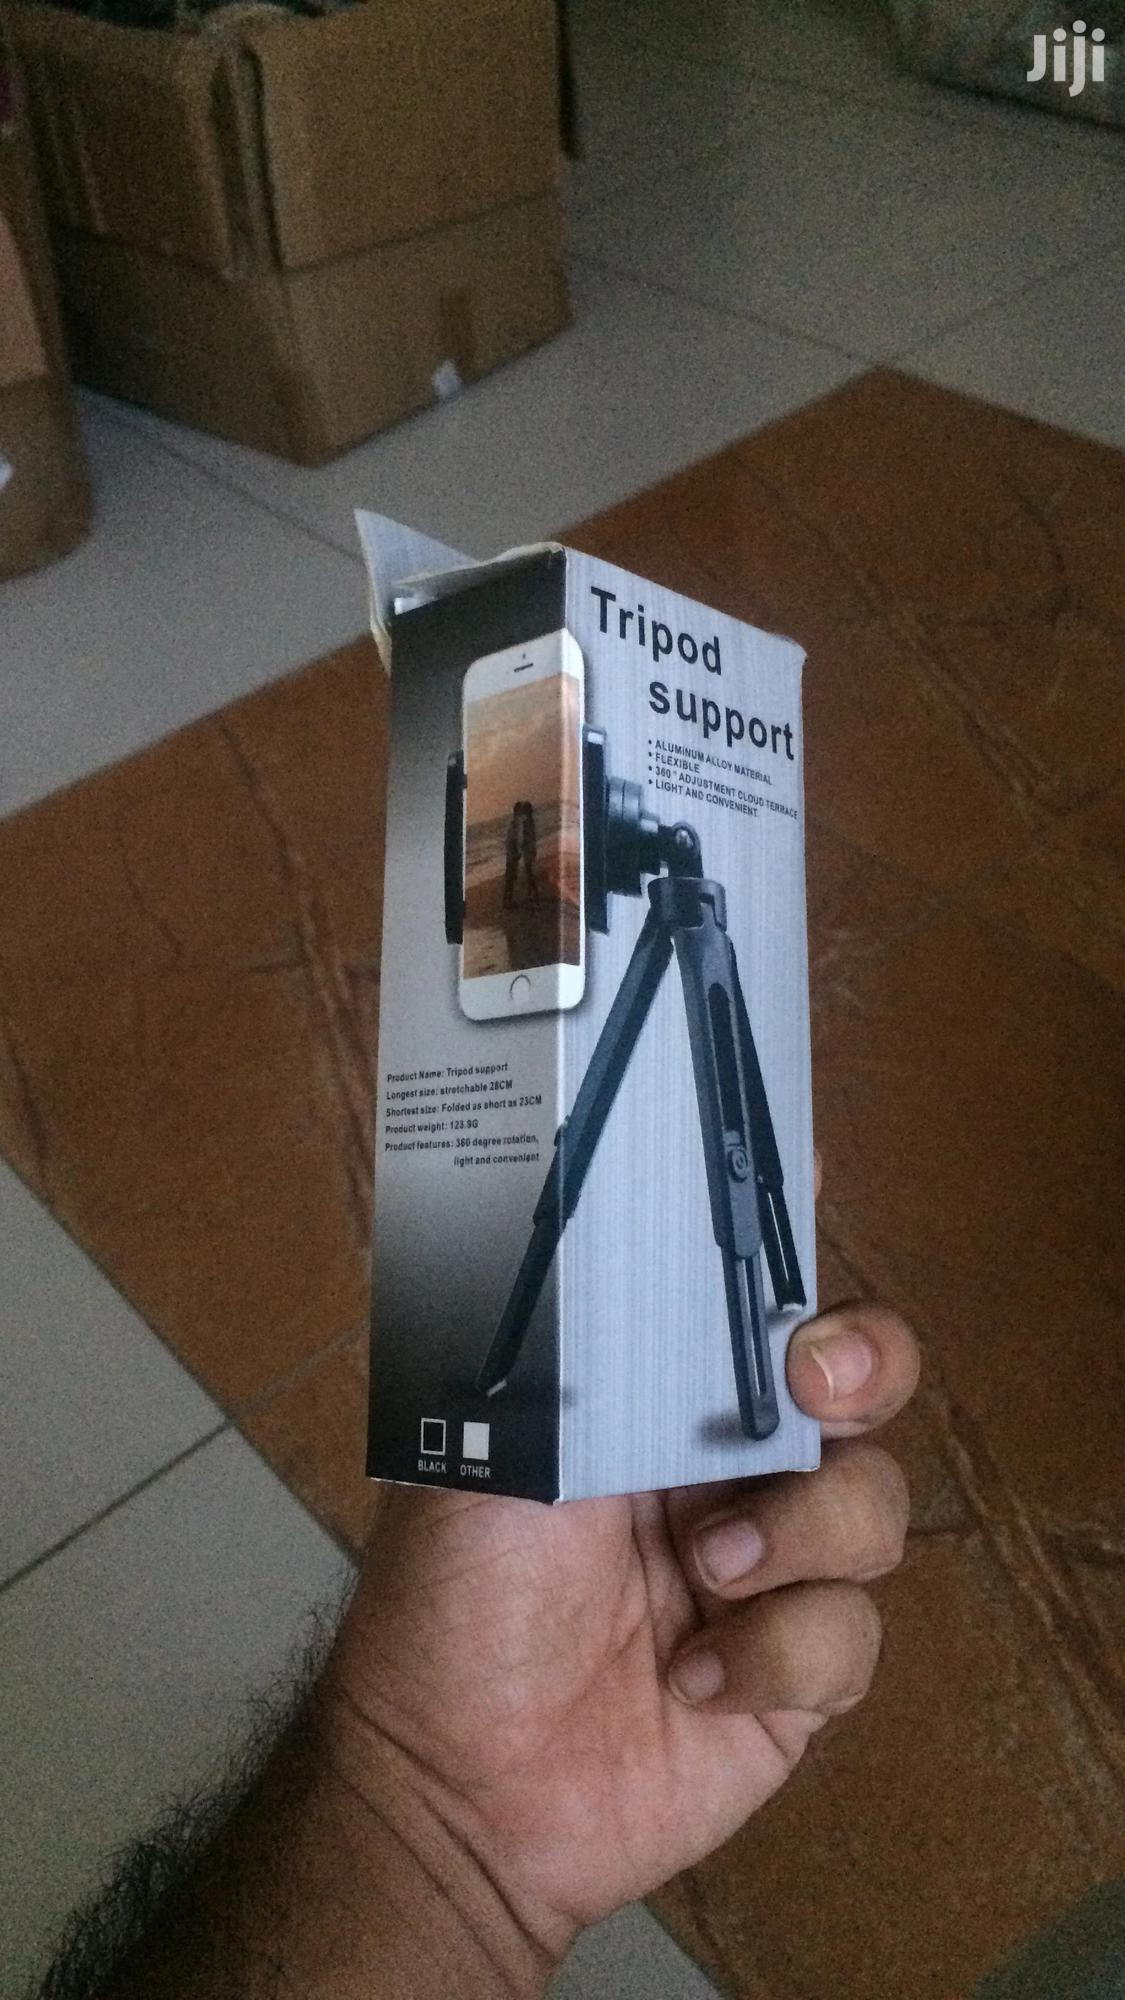 Tripod Support | Accessories for Mobile Phones & Tablets for sale in Mvita, Mombasa, Kenya